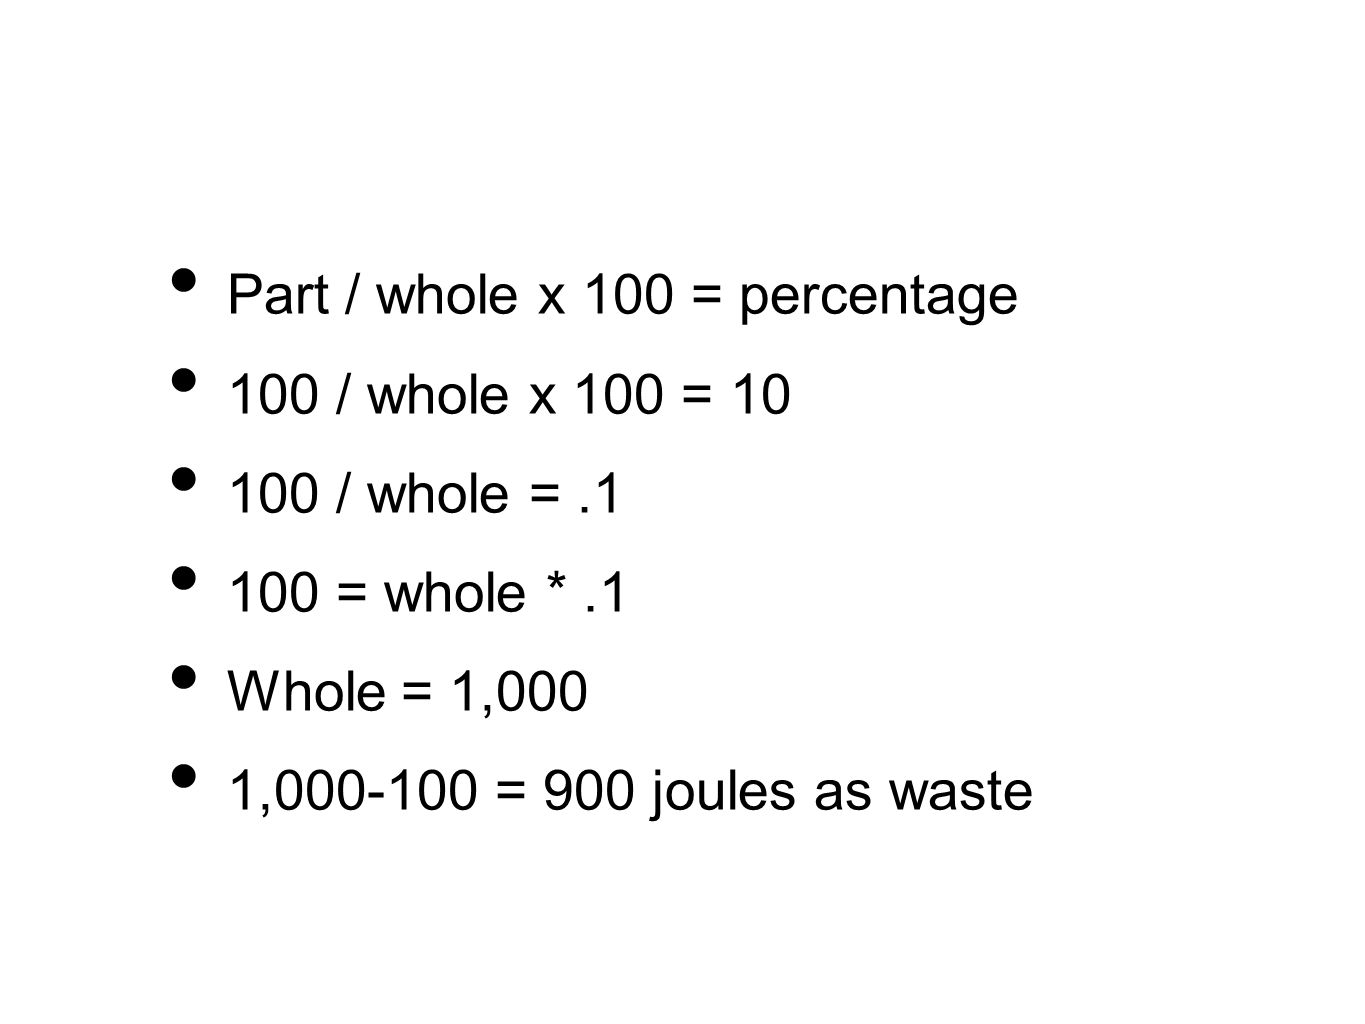 Part / whole x 100 = percentage